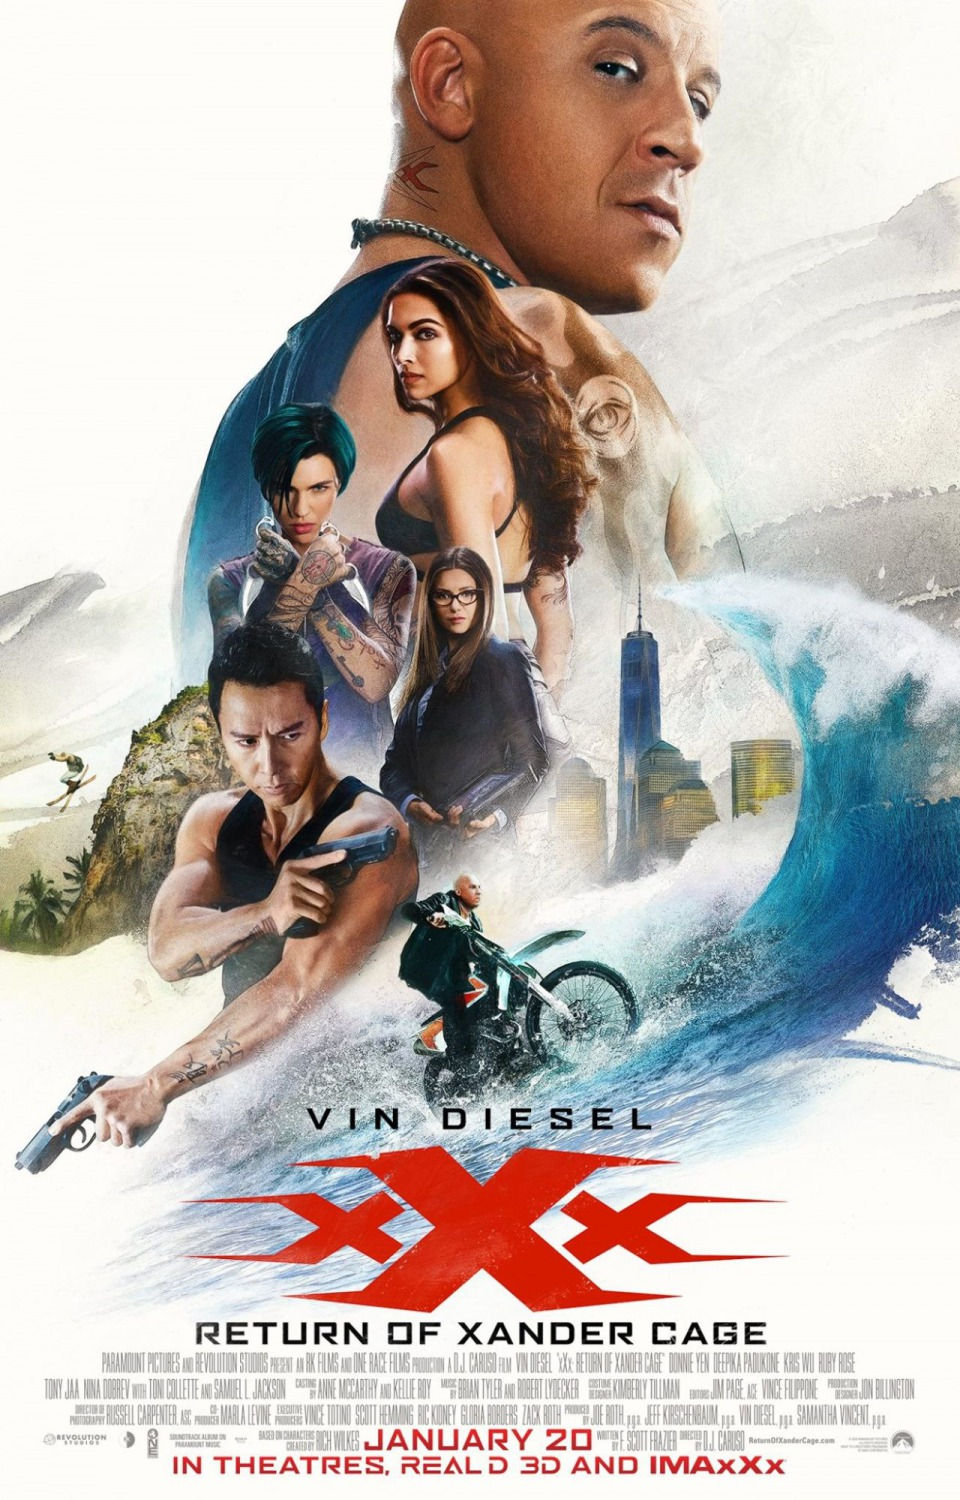 xxx_return_of_xander_cage_ver14_xlg.jpg